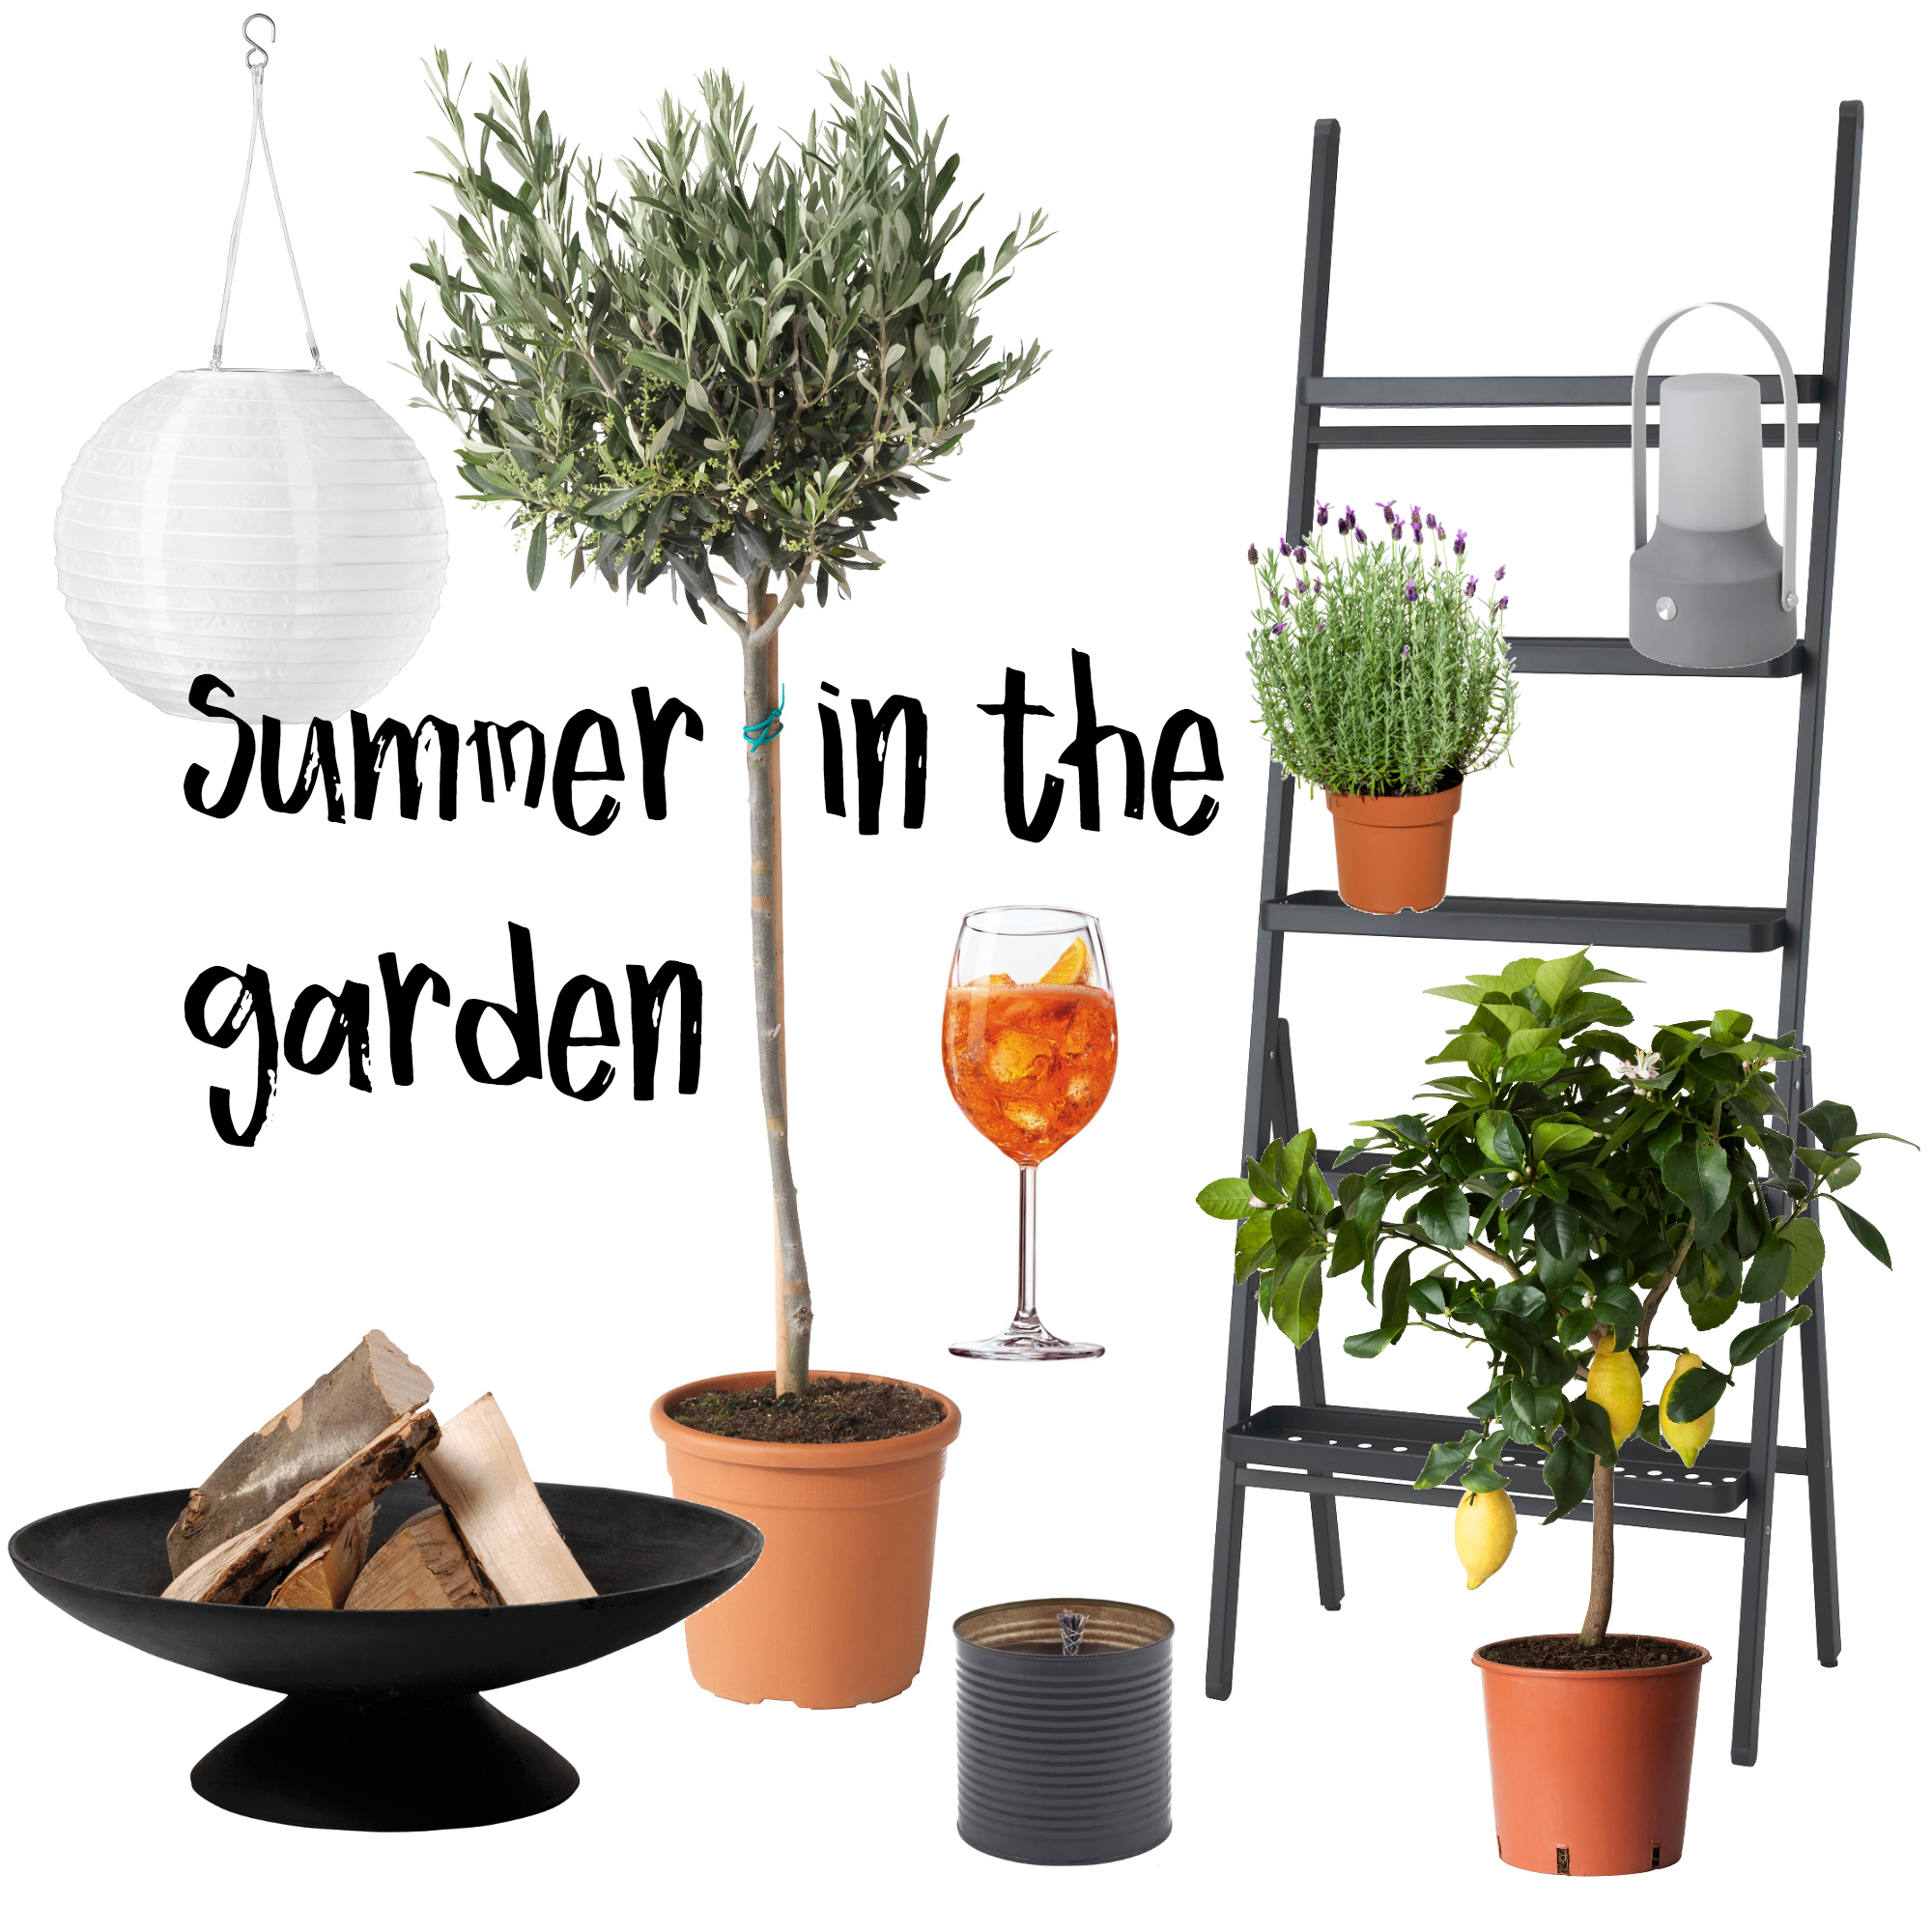 Summer in the garden